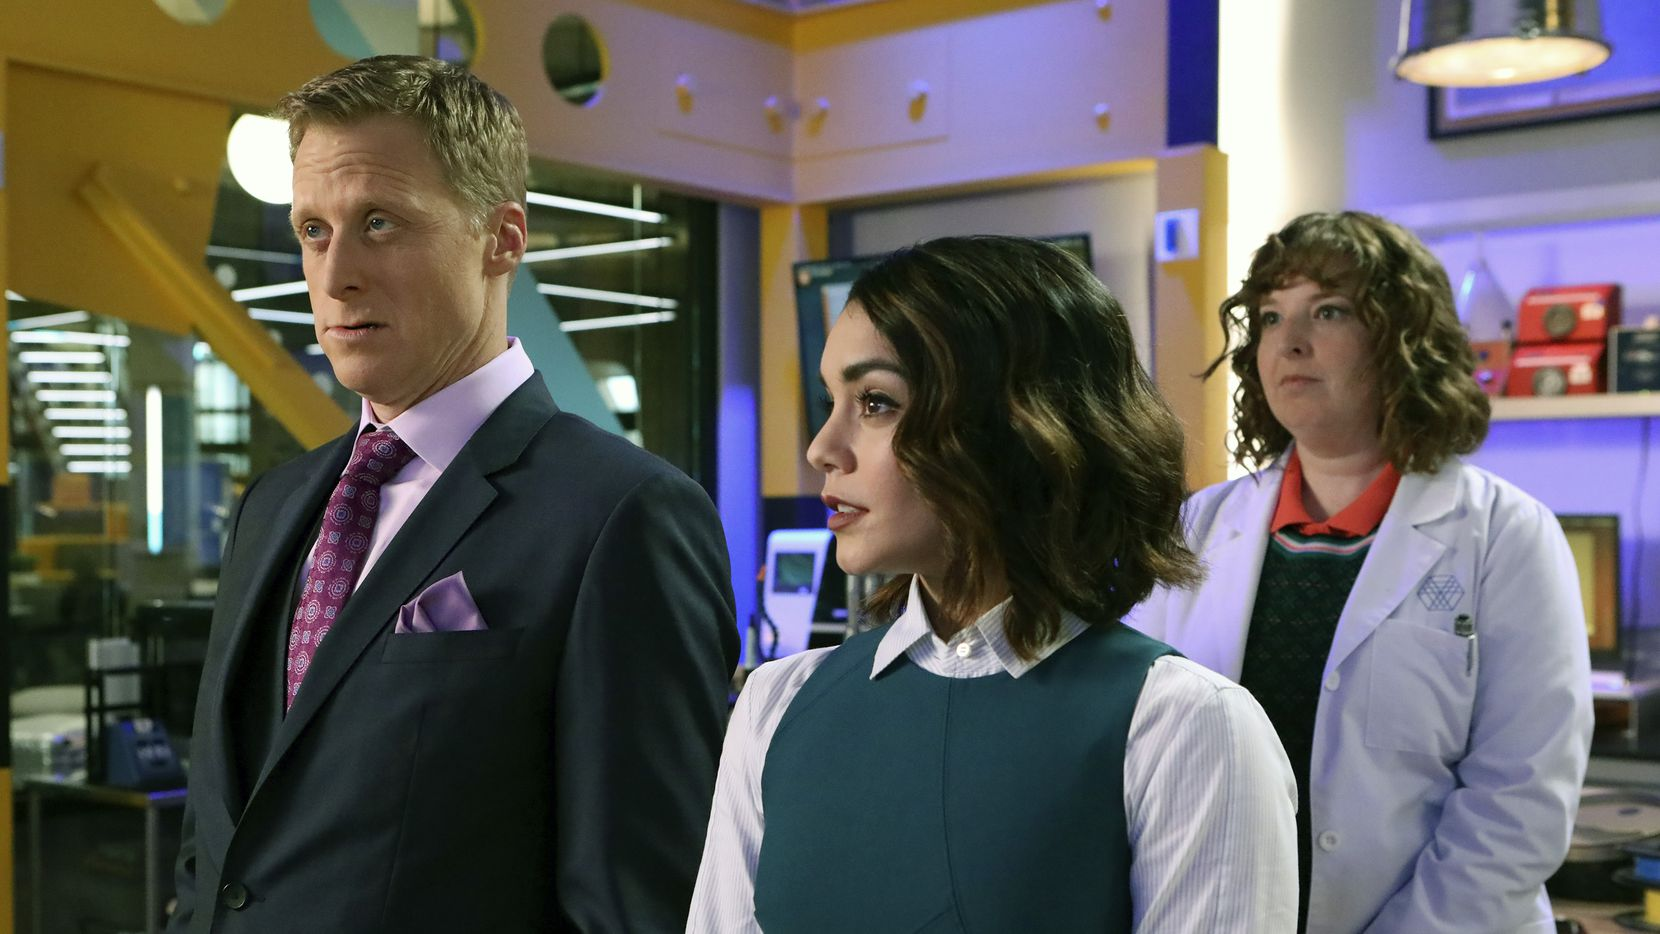 Alan Tudyk plays Van Wayne, cousin of Bruce Wayne (aka Batman). He runs Wayne Securities, which tries to protect regular citizens from the collateral damage inflicted from superhero fights. Vanessa Hudgens plays new employee Emily and Jennie Pierson is Wendy, a lead engineer.